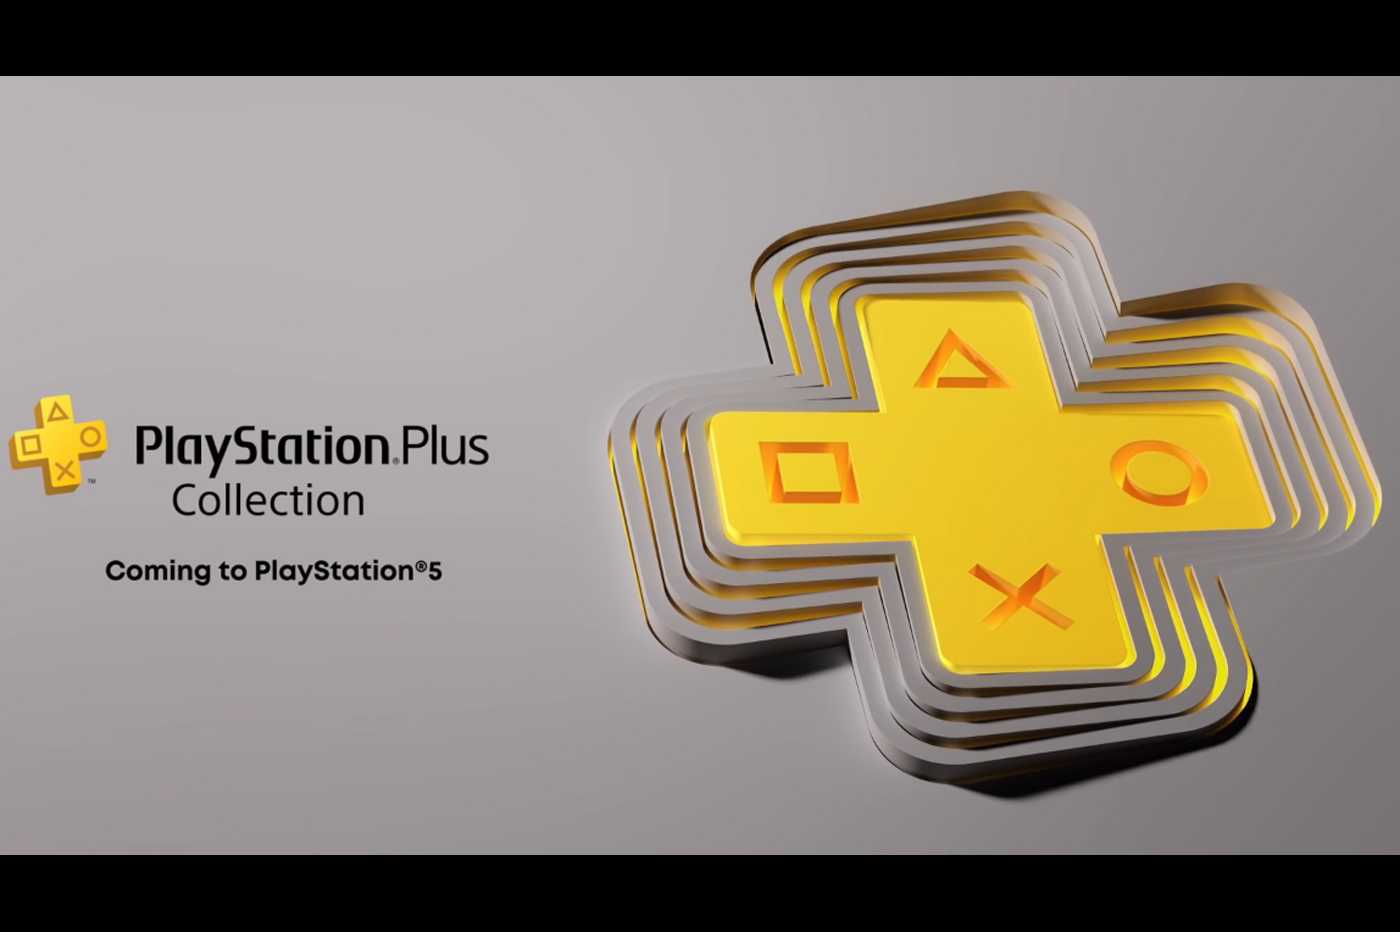 Playstation Plus Collection PS4 PS5